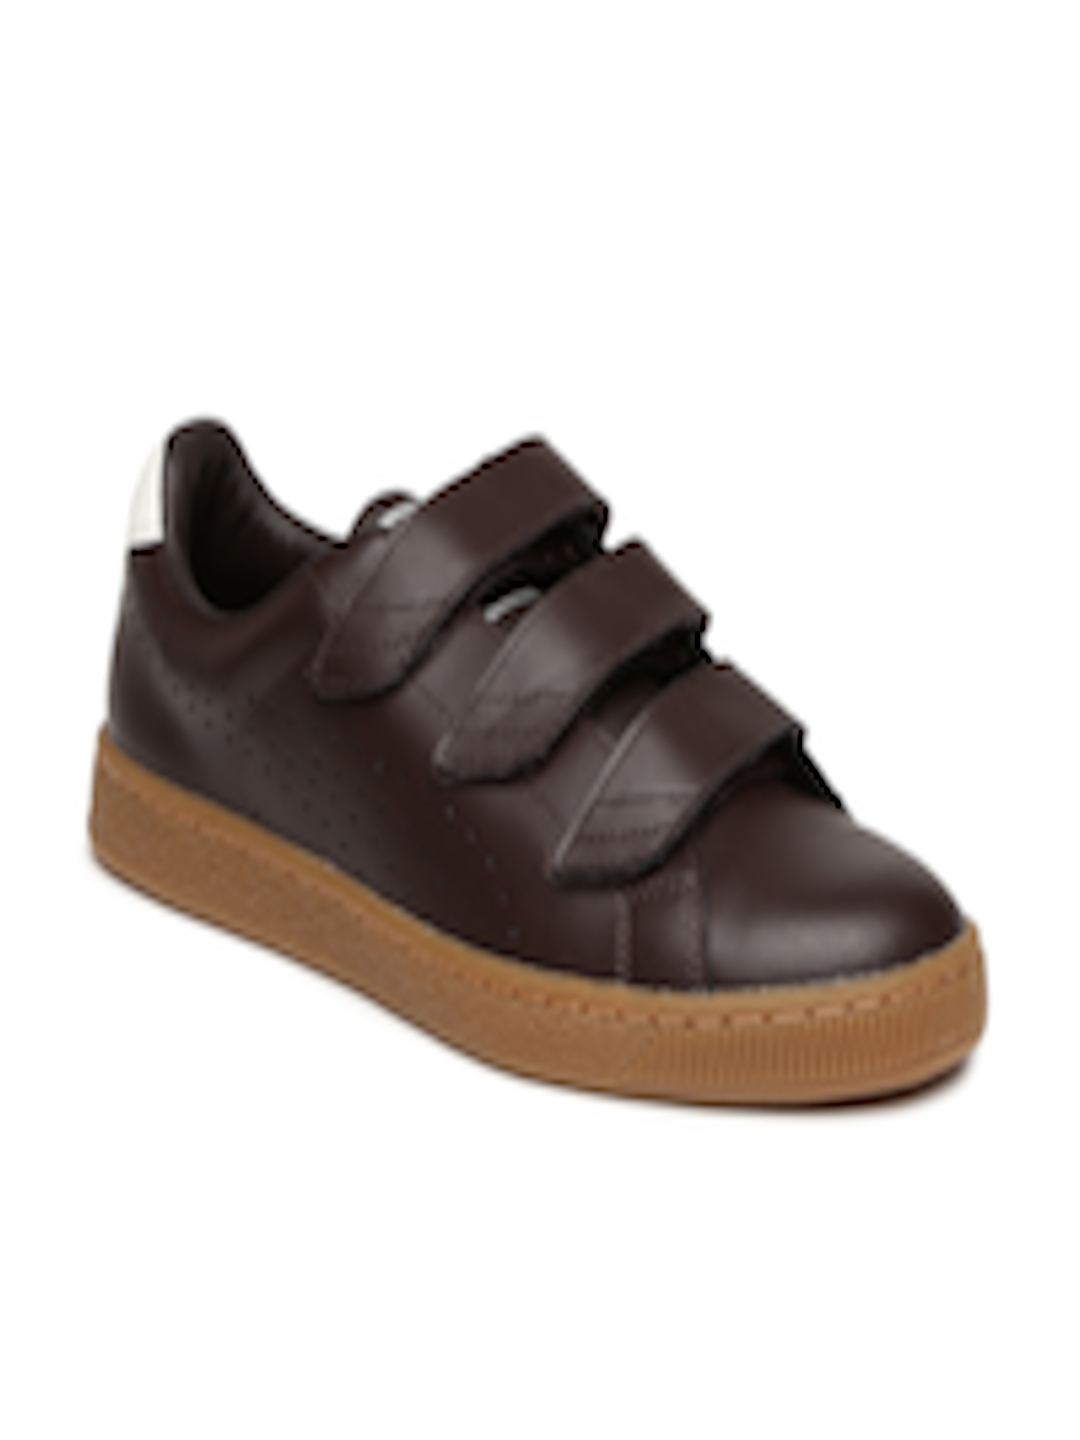 e20a4fc0226 Buy Puma Men Coffee Brown Basket Classic Strap CITI Leather Sneakers -  Casual Shoes for Men 1965714